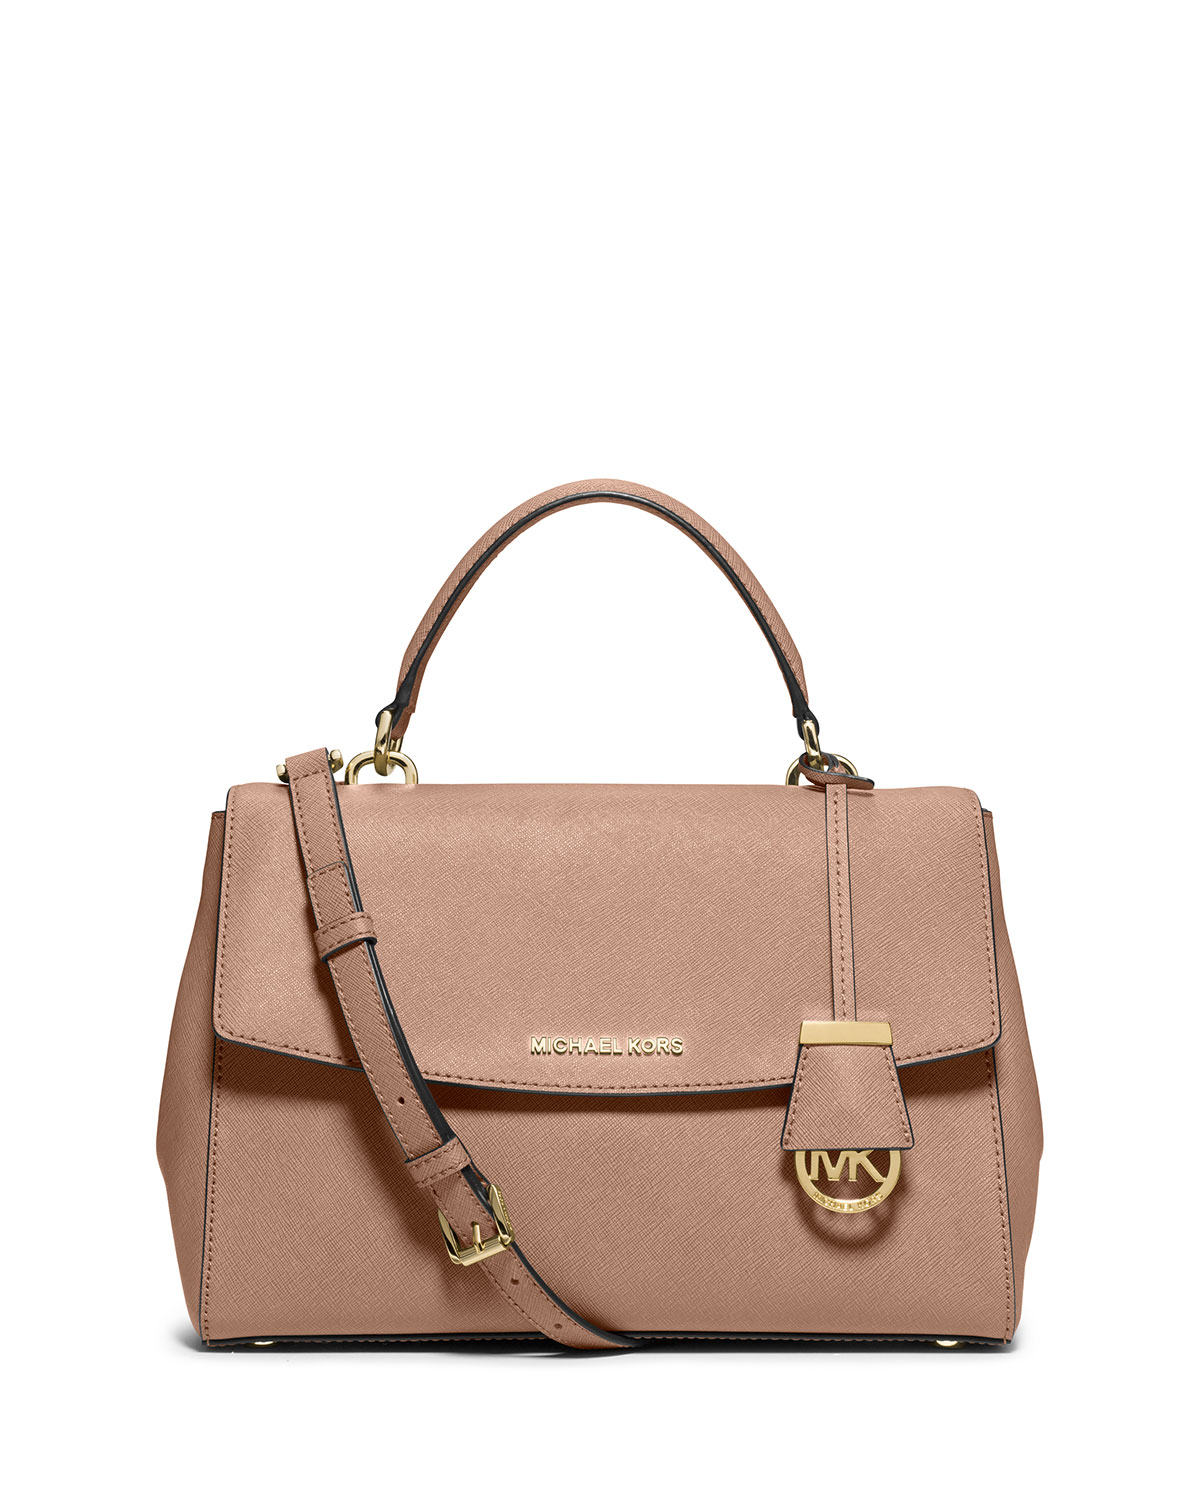 2a35eb207bac77 MICHAEL Michael Kors Ava Medium Saffiano Satchel Bag, Blush | Neiman ...